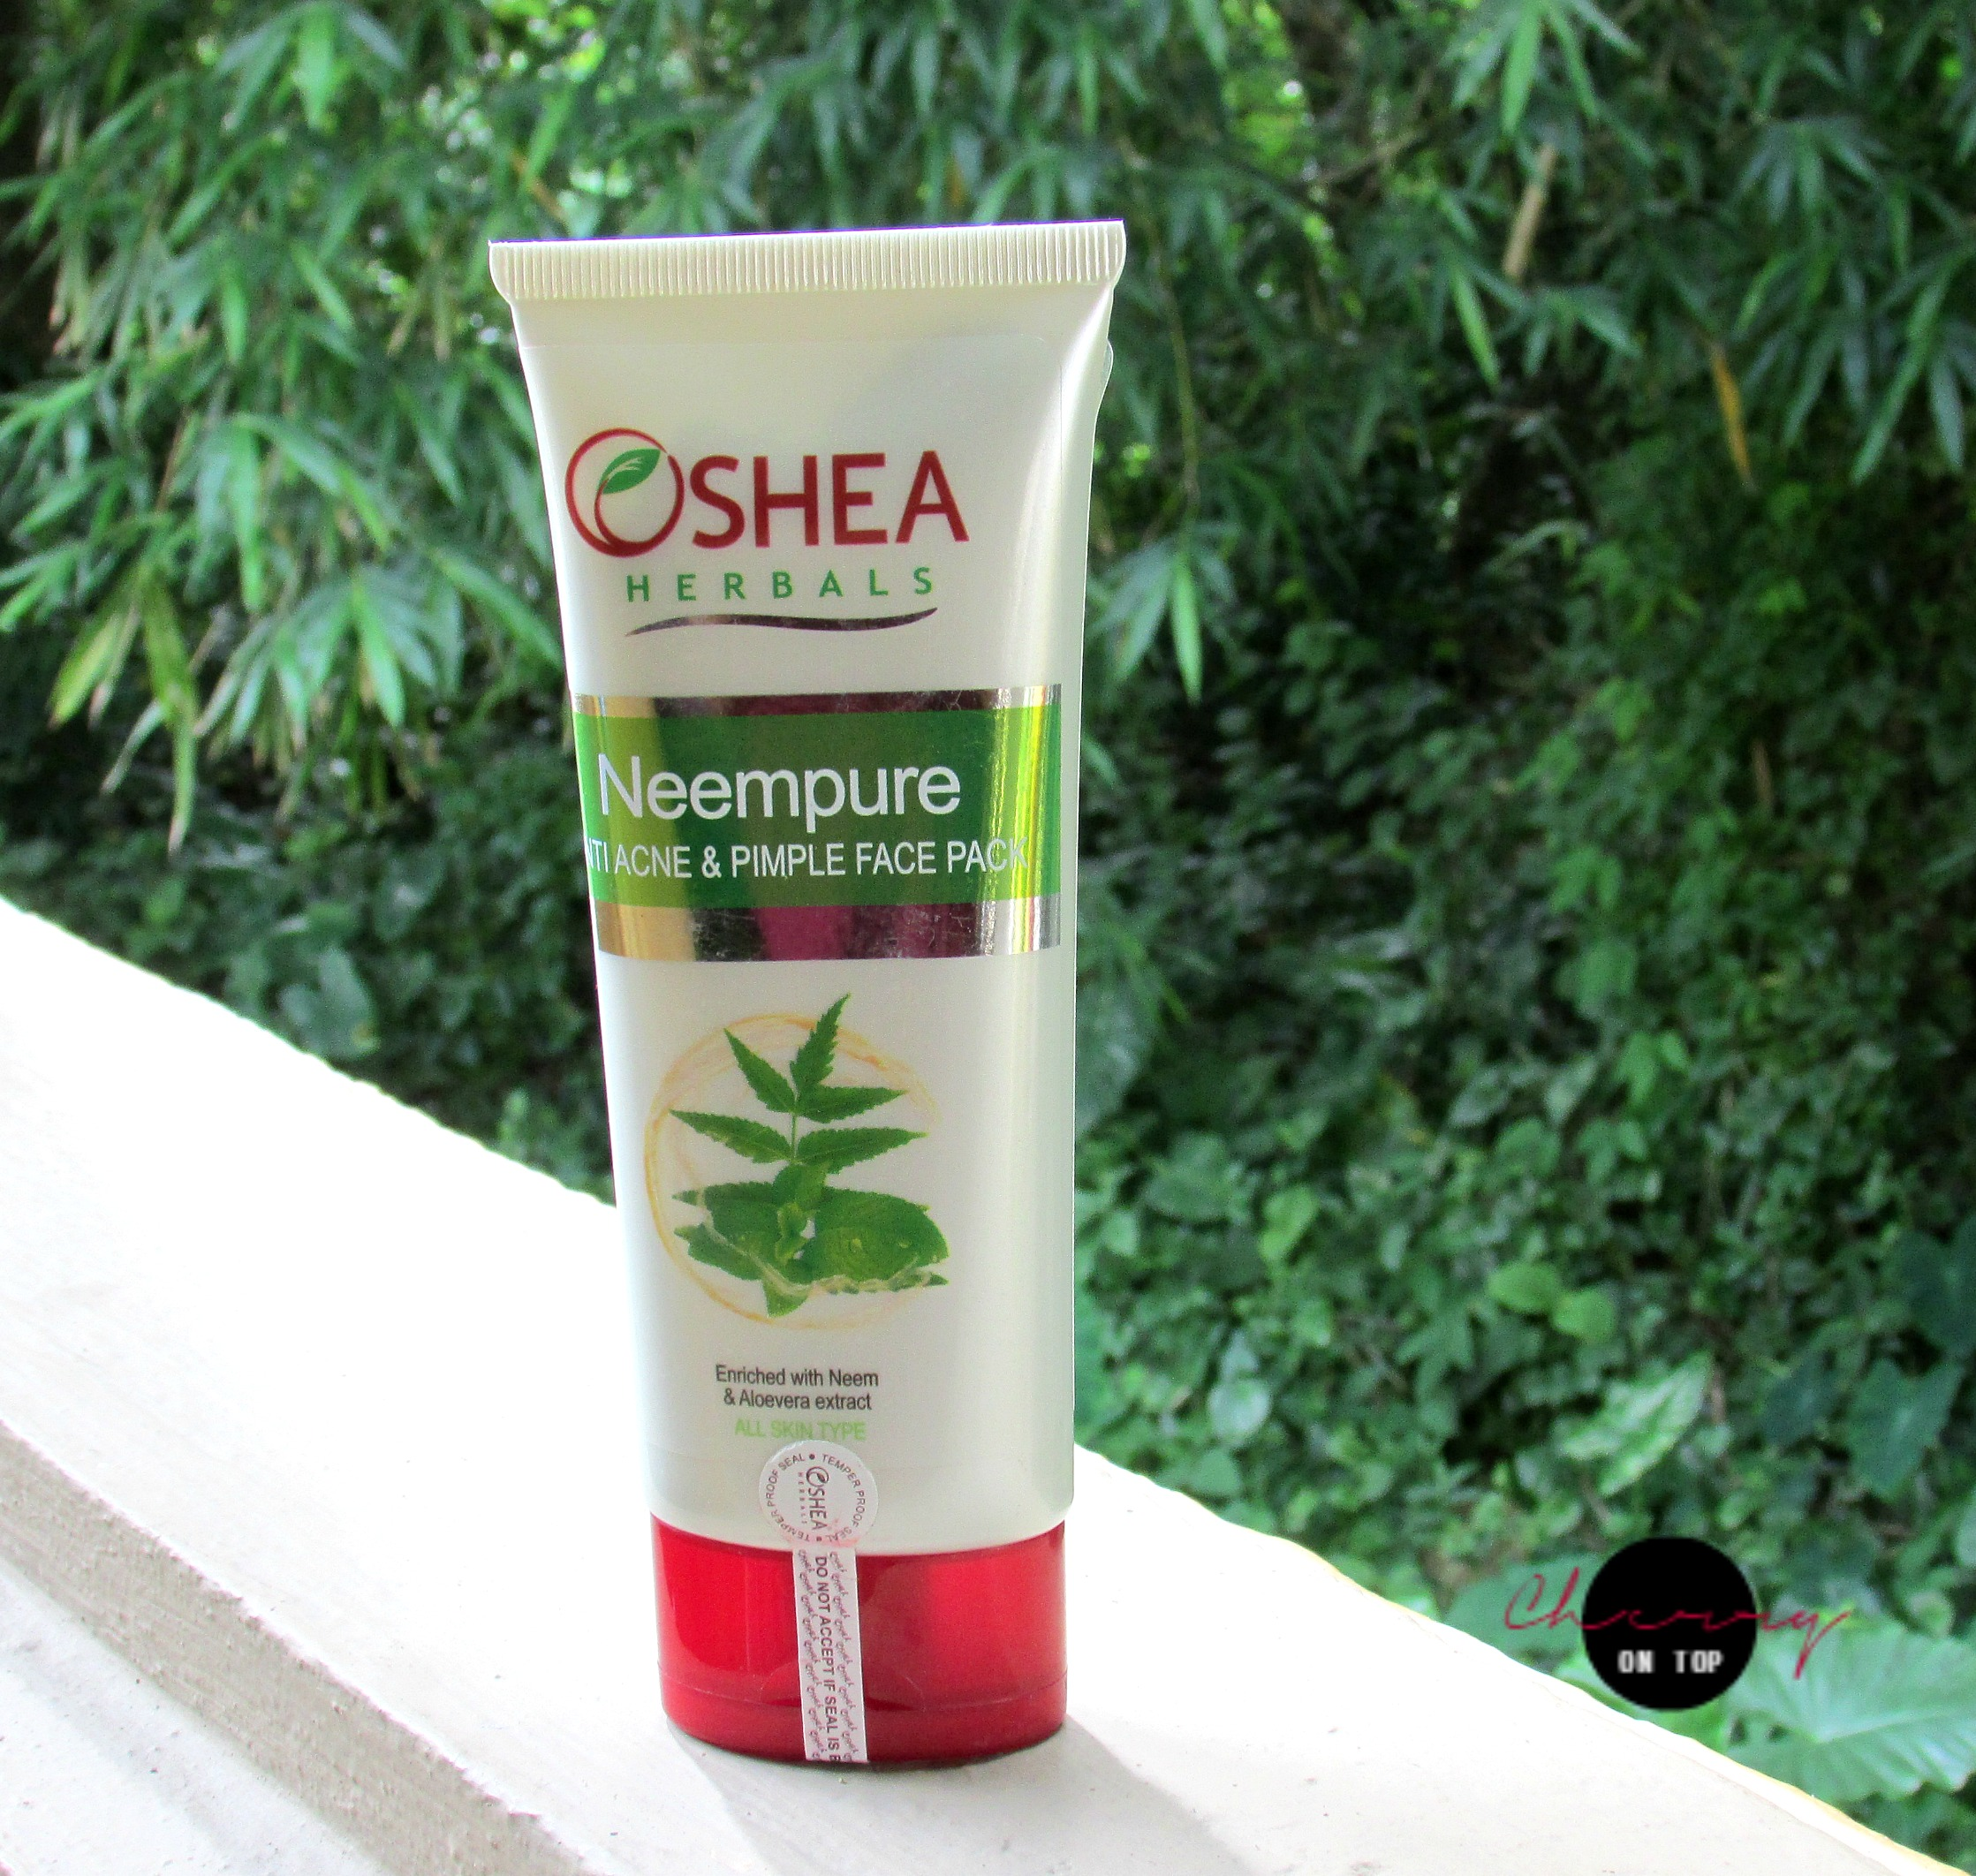 Oshea Herbals NeemPure Anti Acne & Pimple Face Pack | Cherry On Top